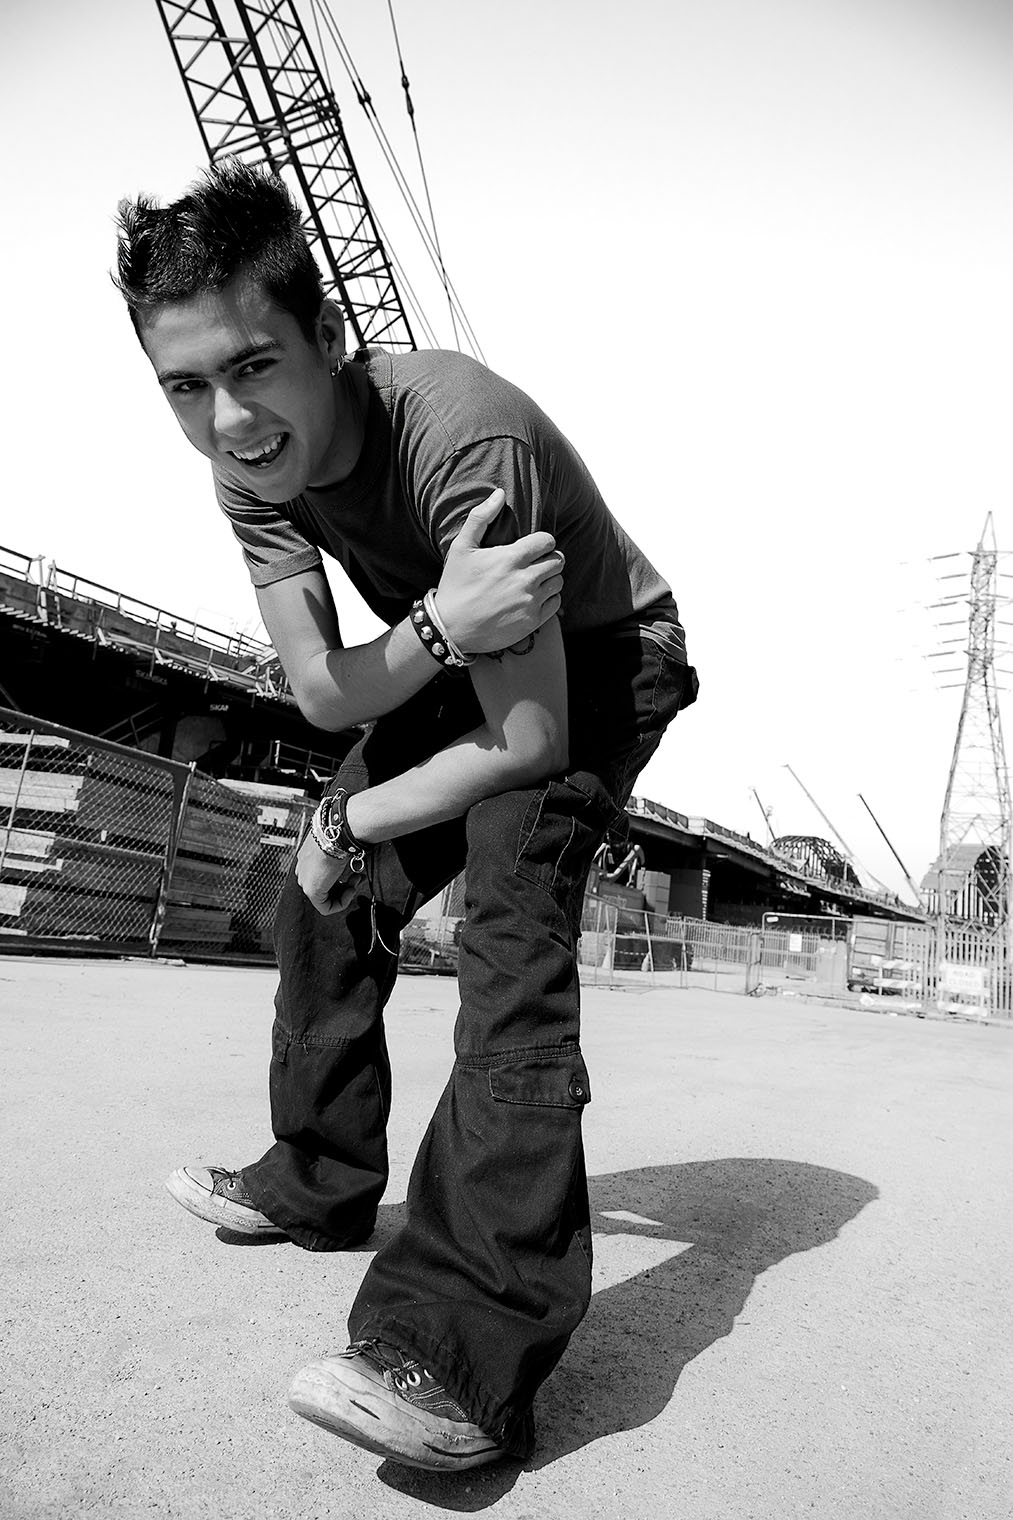 man in cargopants jeans denim dressed joking into camera with big grin black and white photograph